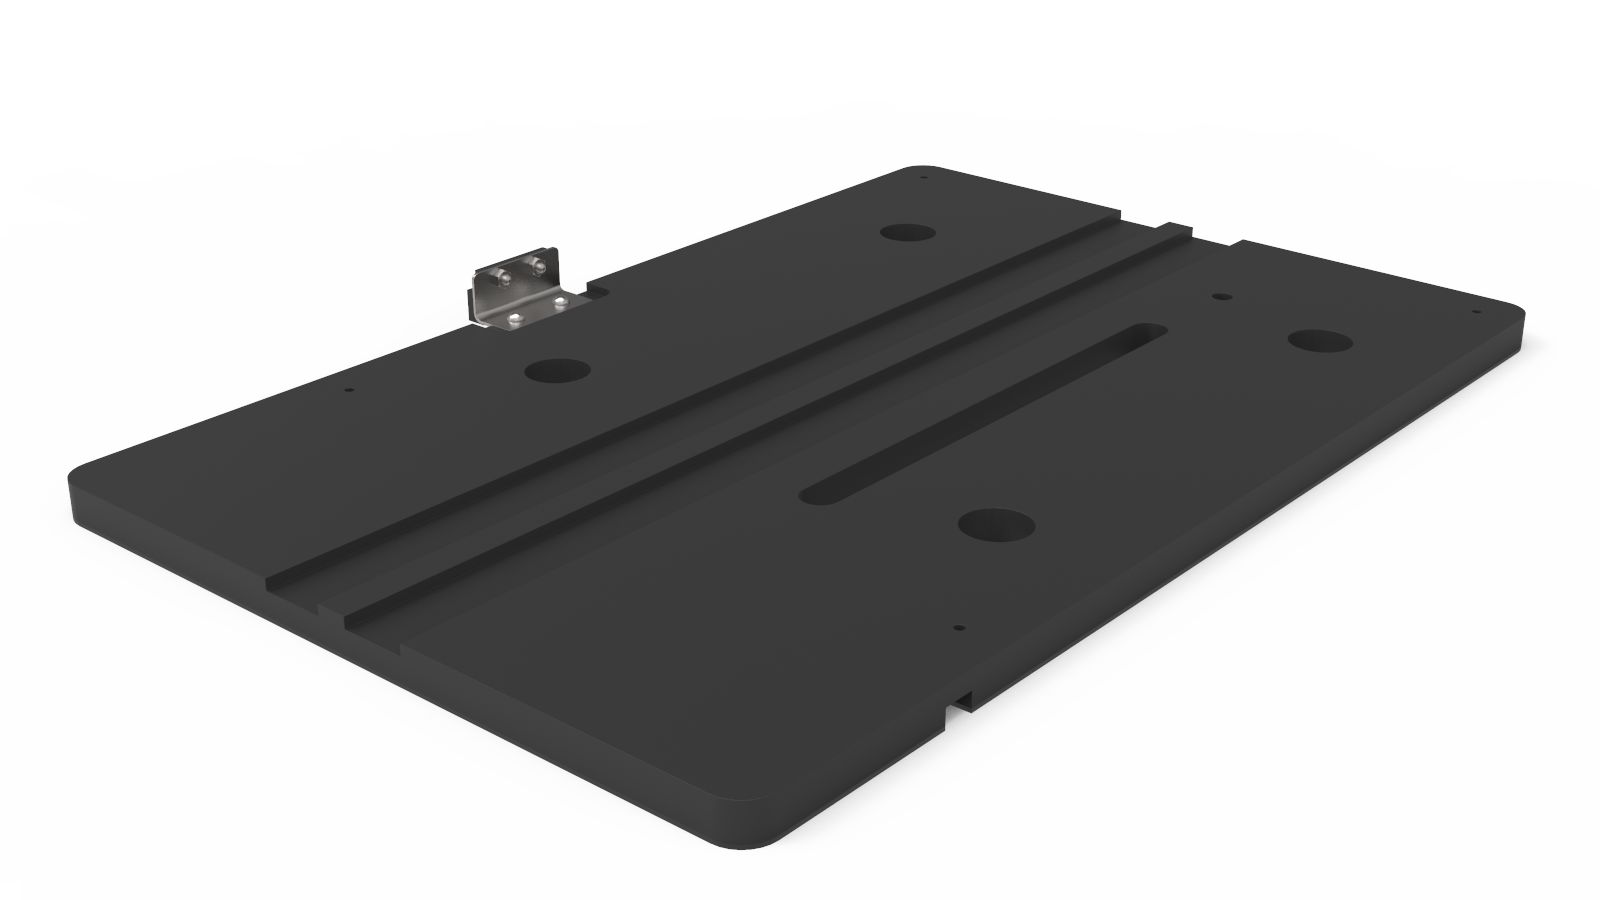 PICO 155 Cutting table attachment for manual cutting of printed circuit board specimens